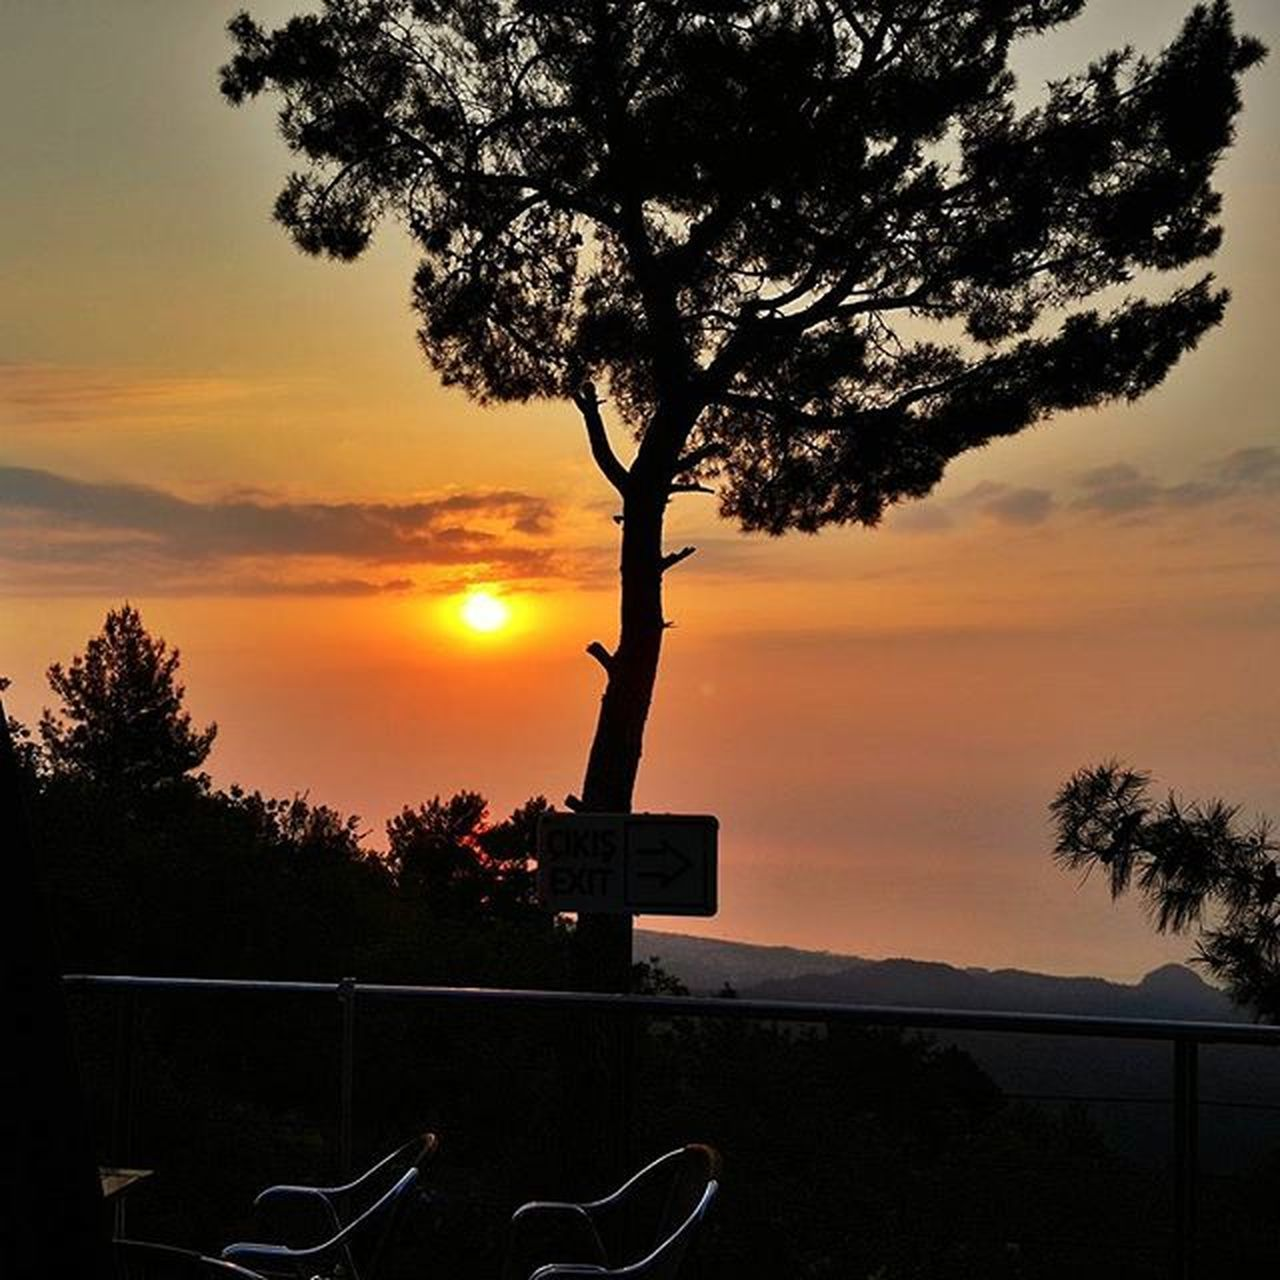 tree, sunset, beauty in nature, silhouette, sky, no people, scenics, tranquility, outdoors, nature, swimming pool, branch, city, day